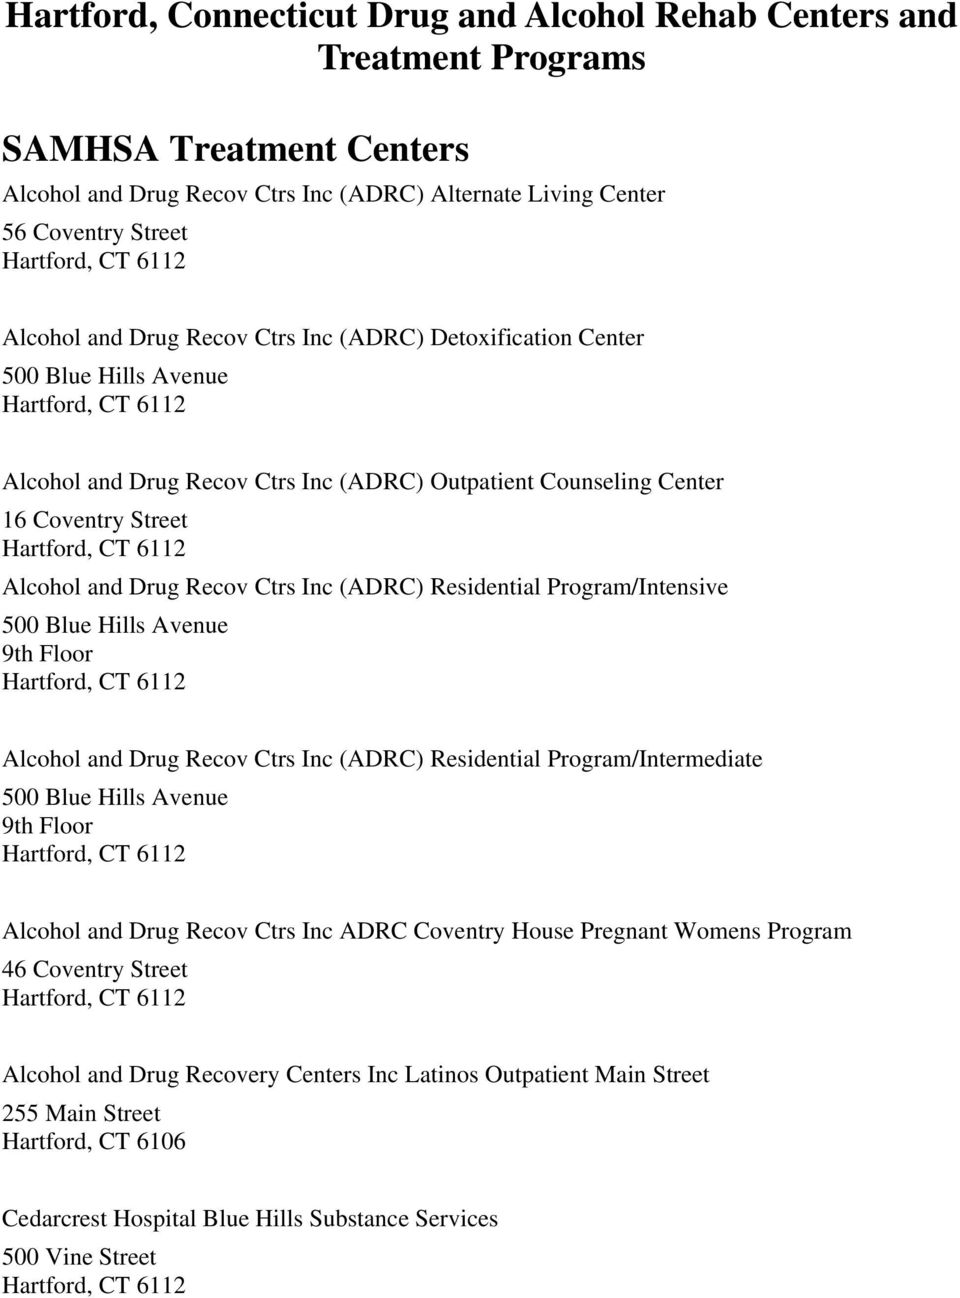 Residential Program/Intensive 500 Blue Hills Avenue 9th Floor Alcohol and Drug Recov Ctrs Inc (ADRC) Residential Program/Intermediate 500 Blue Hills Avenue 9th Floor Alcohol and Drug Recov Ctrs Inc